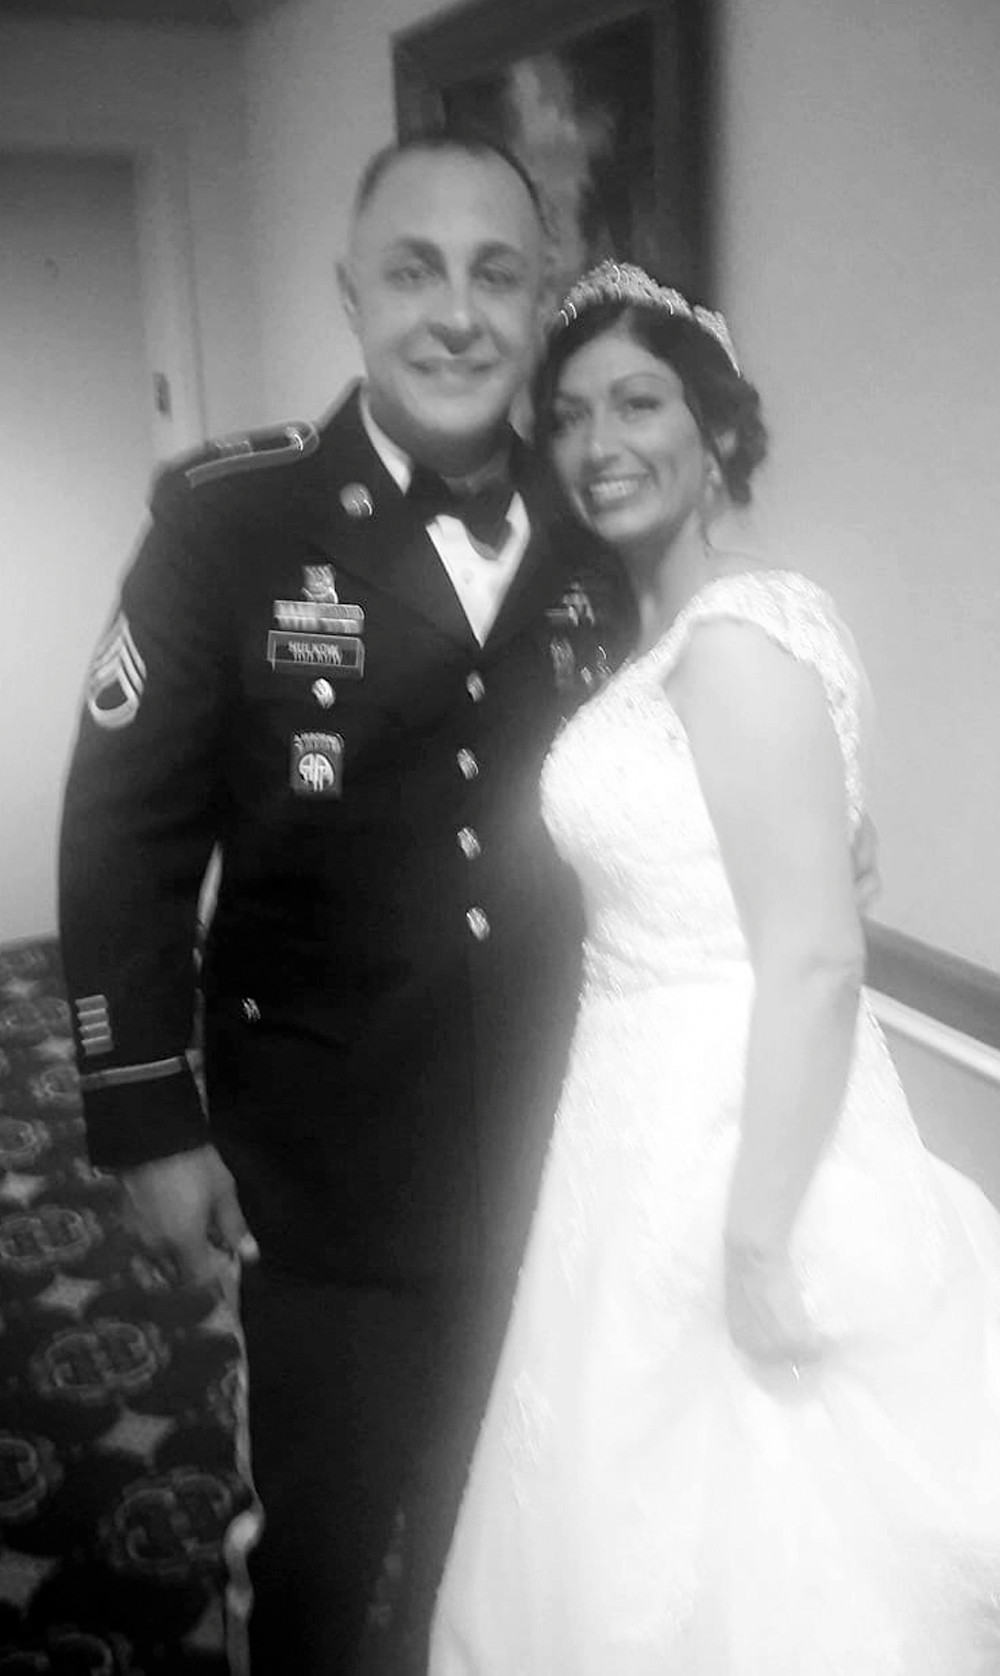 MR. & MRS. PAUL HULKOW JR.